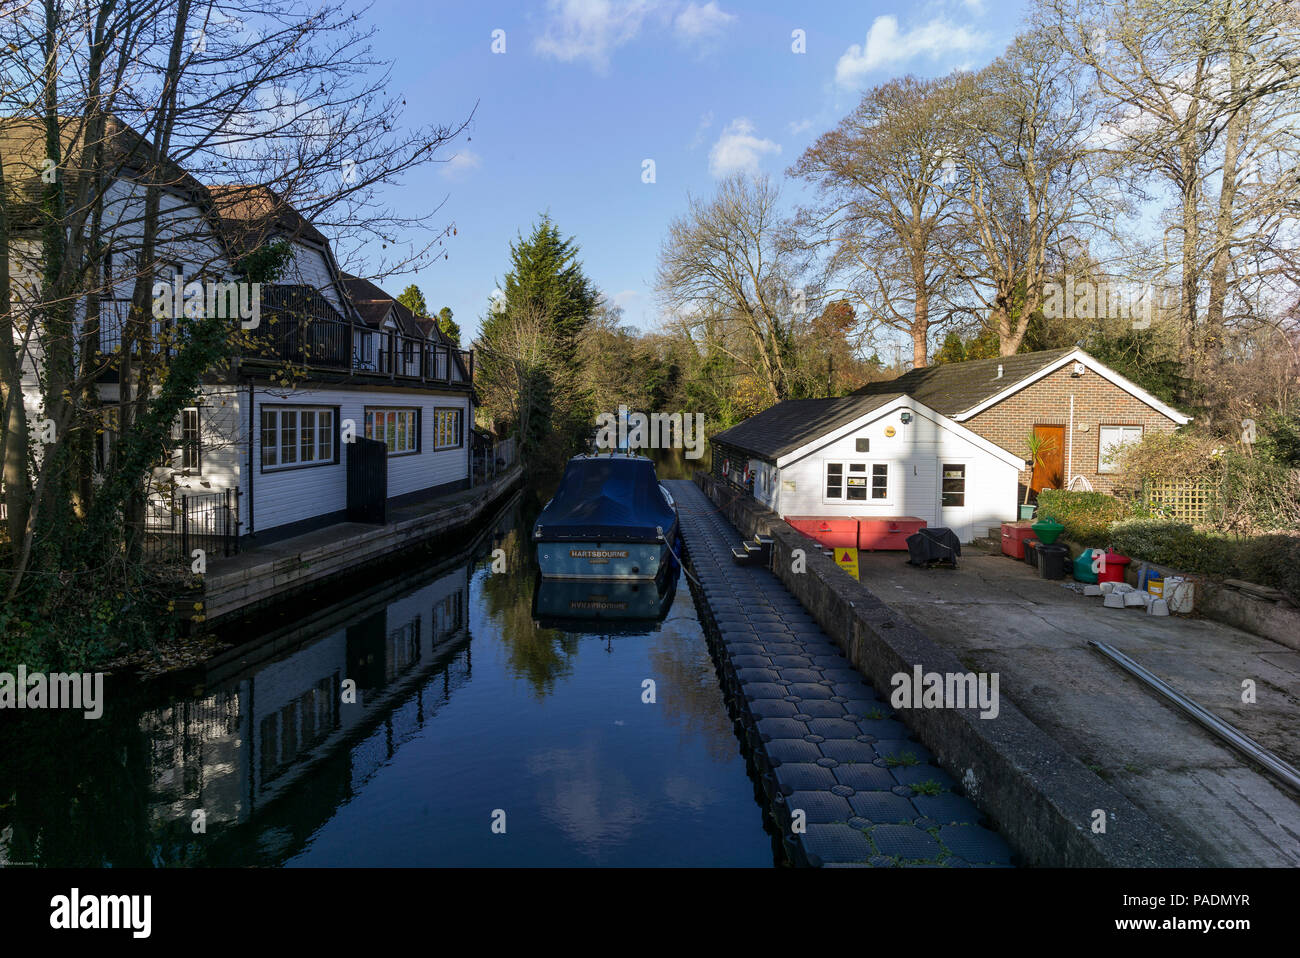 Sunny day home office Me Yet raymill Island Maidenhead Berkshire Uk General View On Sunny Amazoncom On Sunny Day Of Raymill Island Stock Photos On Sunny Day Of